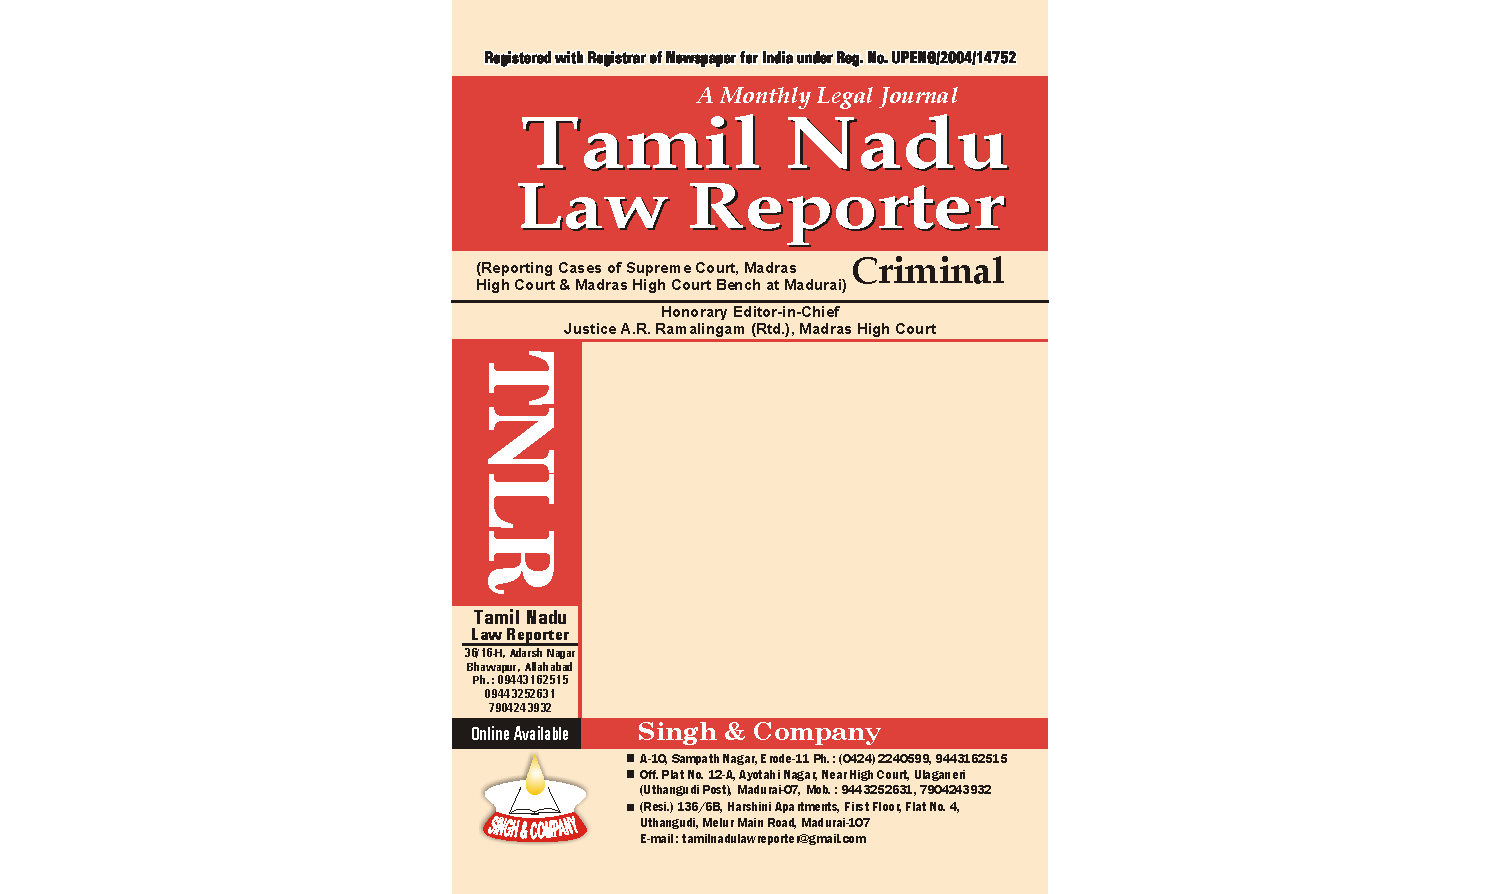 Tamil Nadu Law Reporter (online law journal) Yearly Subscription for Year 2019